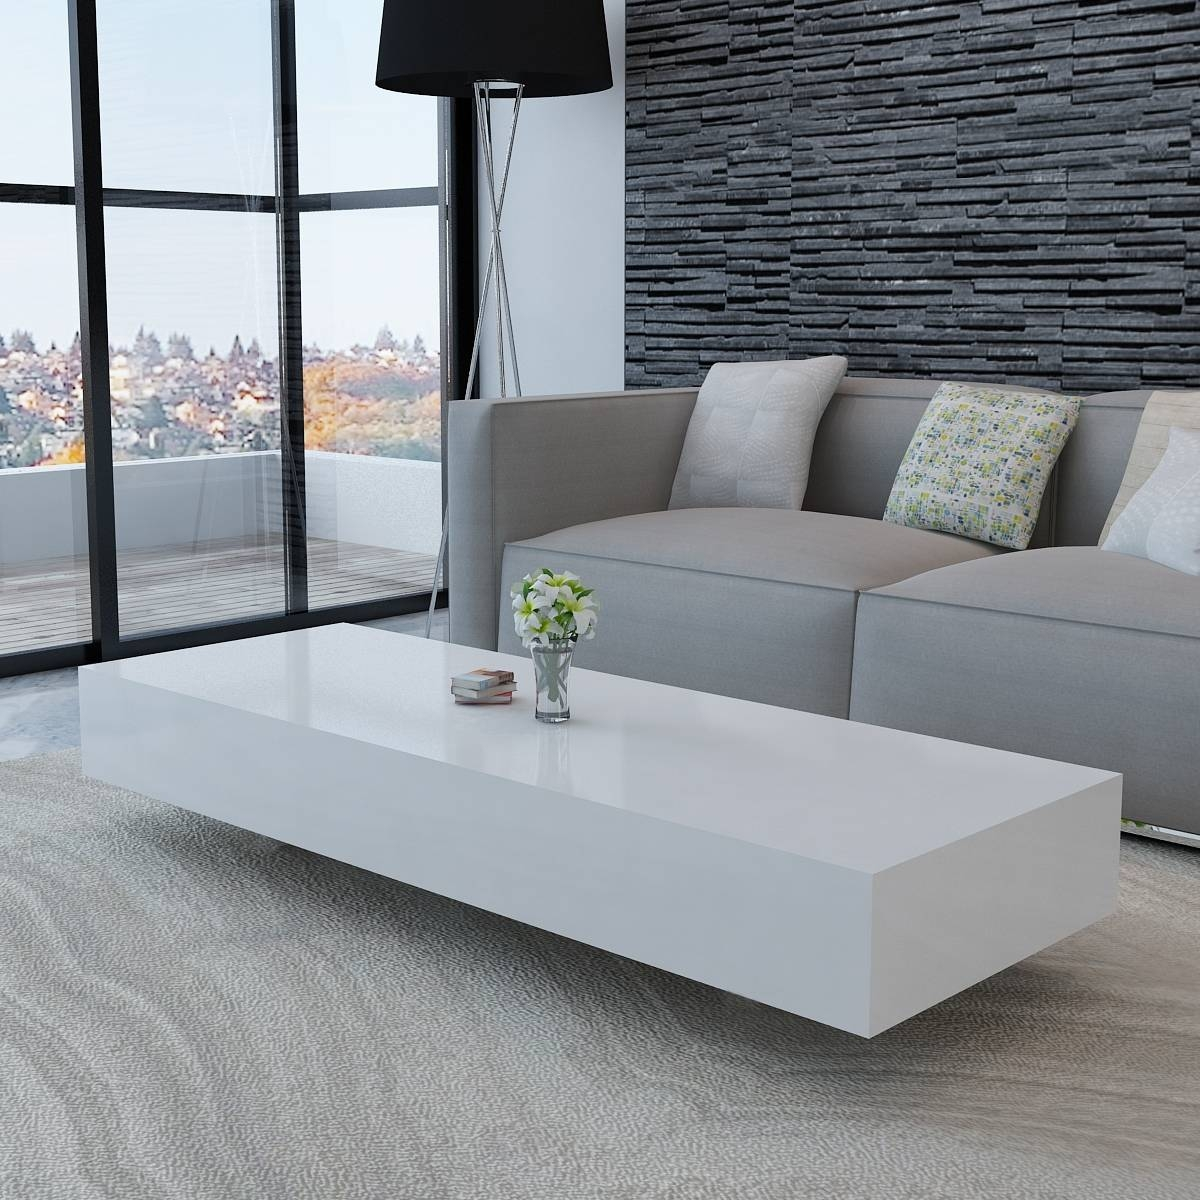 Popular Photo of Coffee Tables White High Gloss